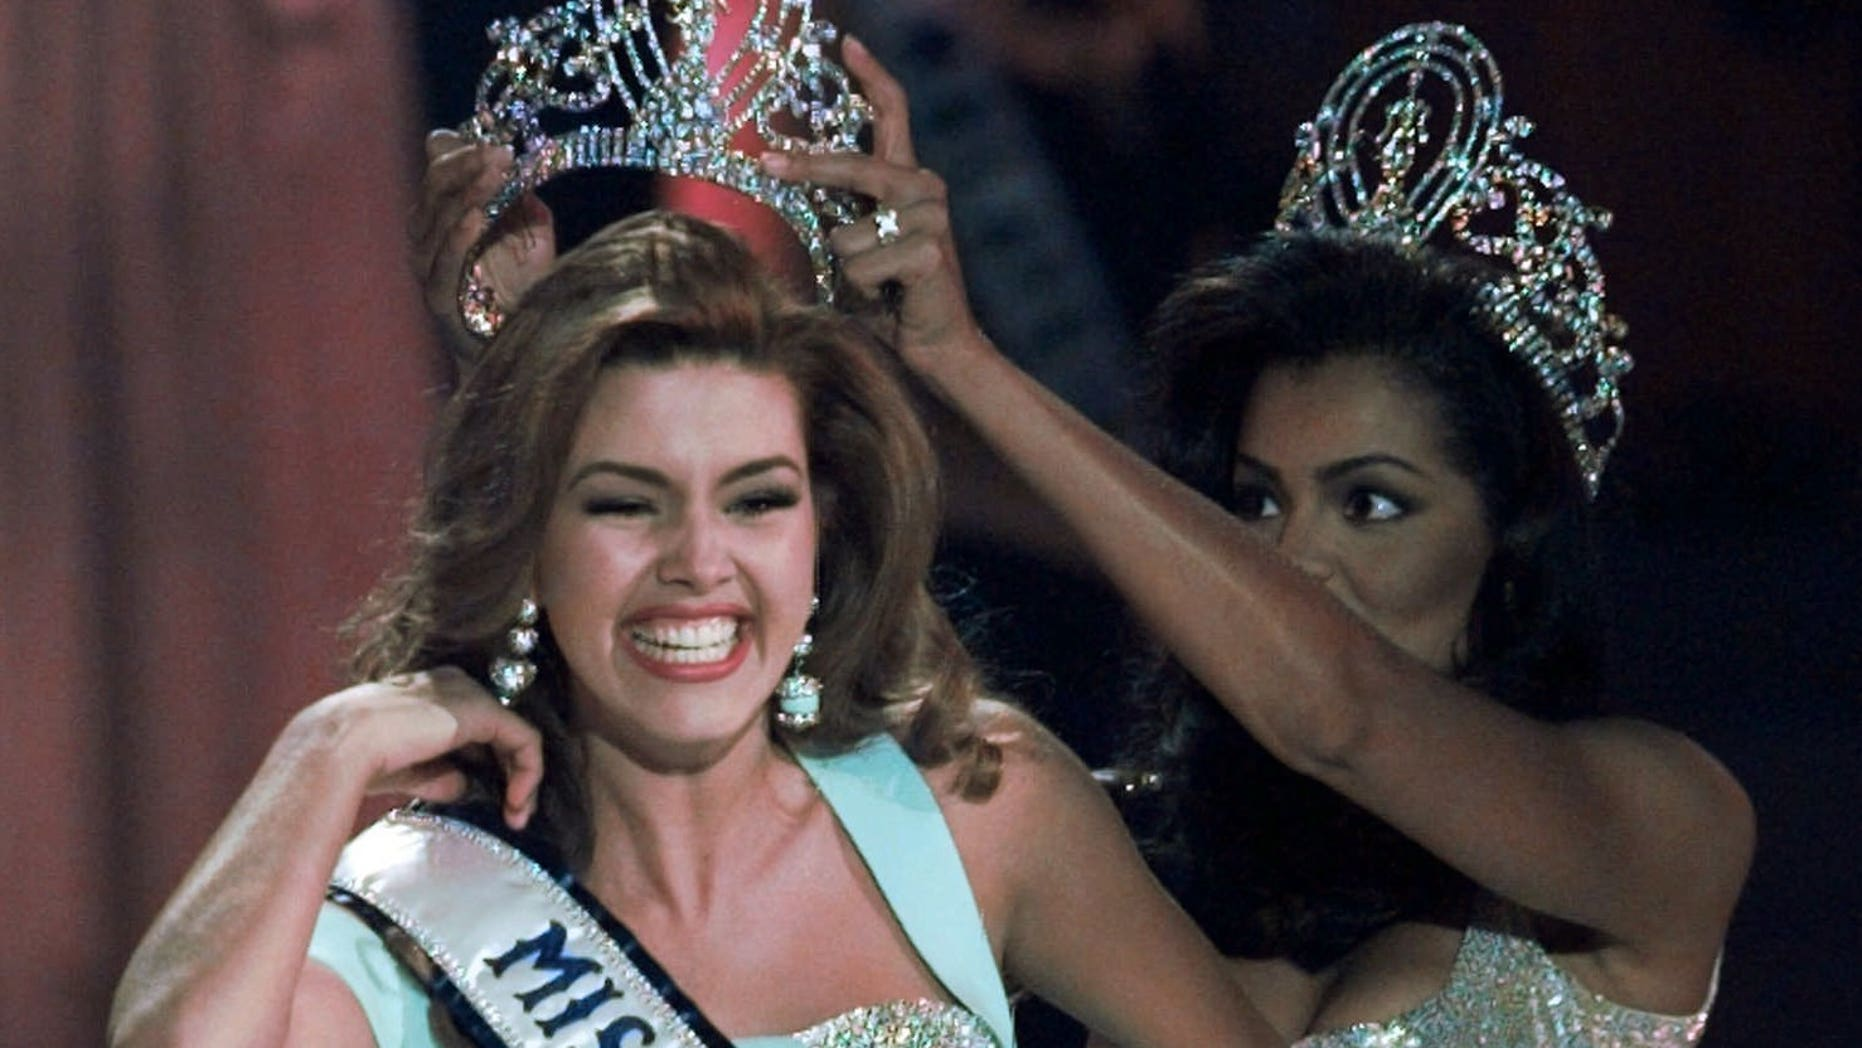 1996 Miss Universe Alicia Machado of Venezuela is crowned by the 1995 winner Chelsi Smith at the Miss Universe competition in Las Vegas.